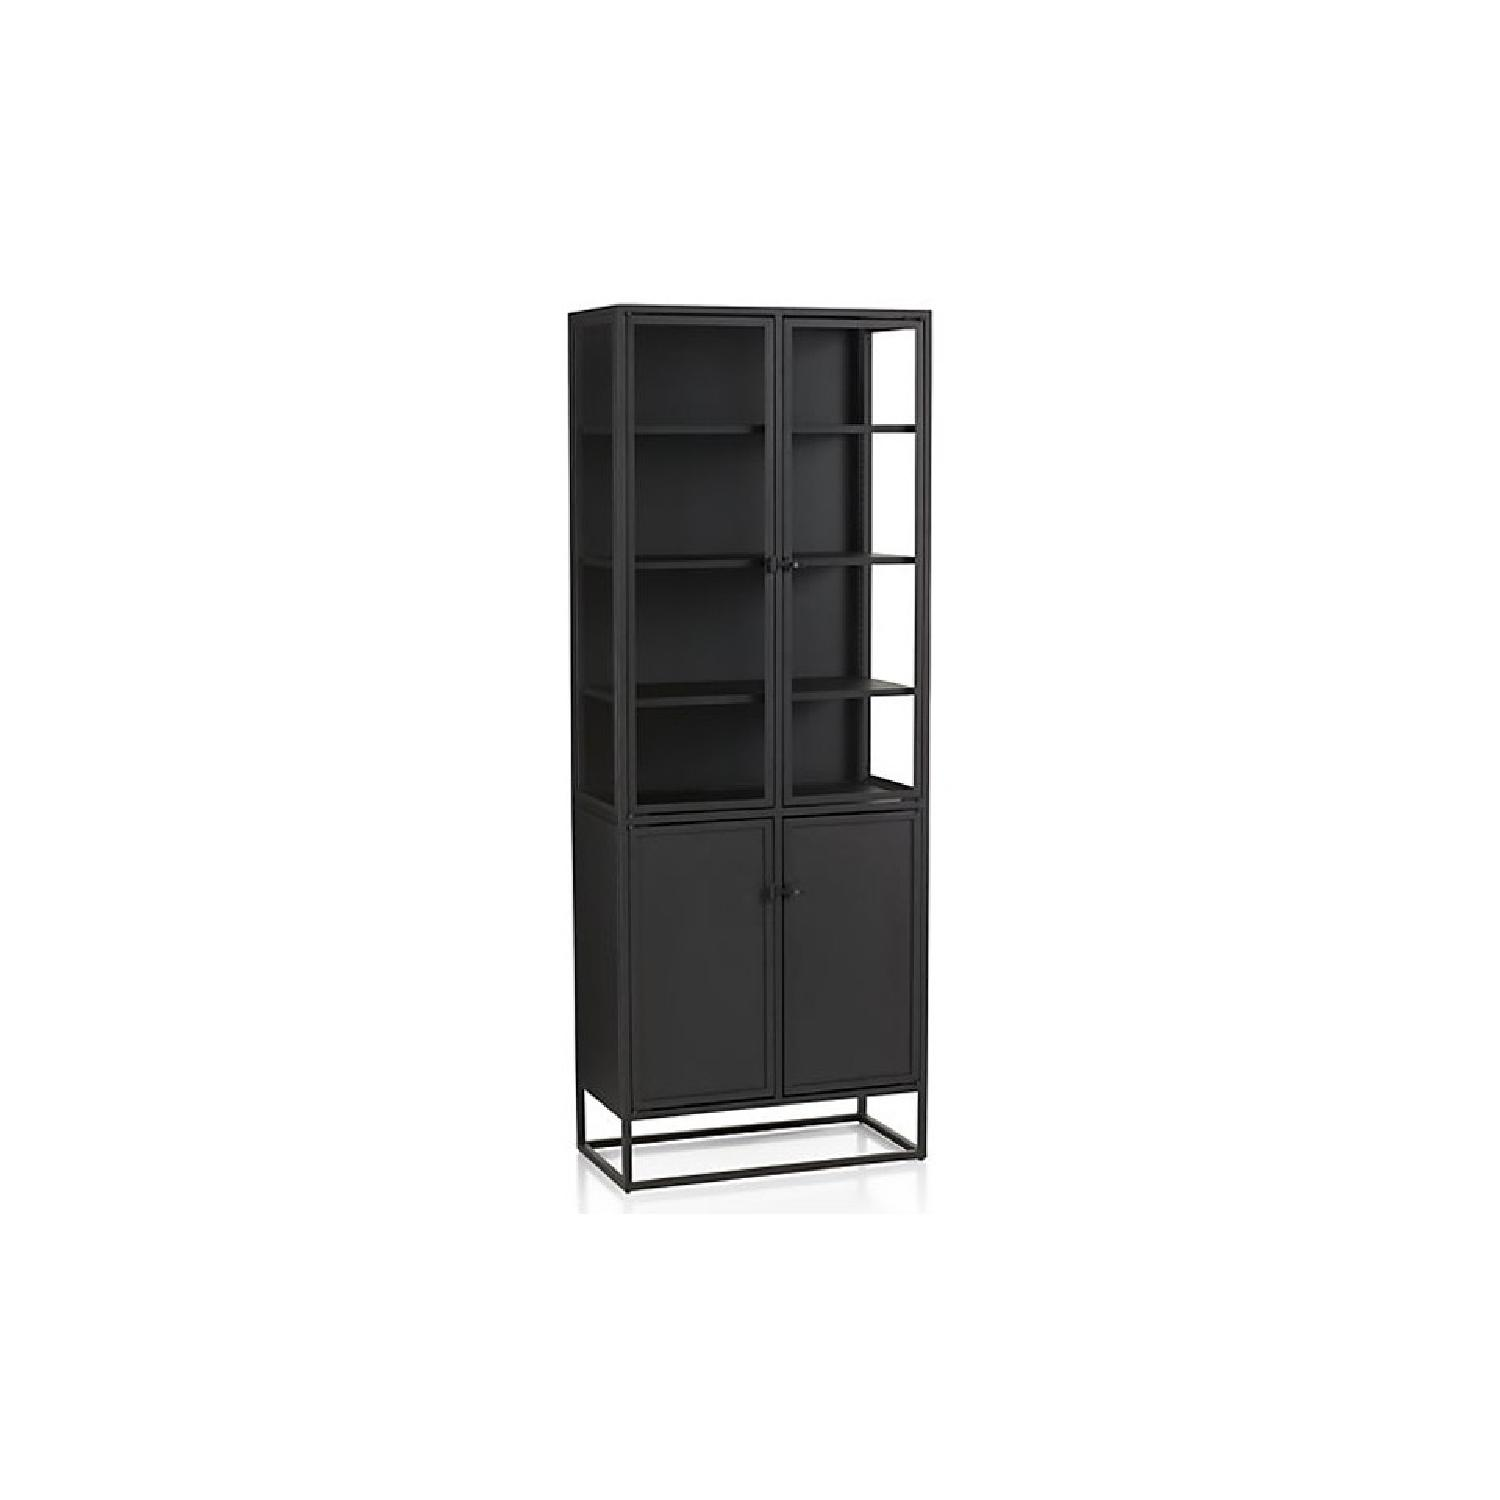 Crate & Barrel Casement Black Tall Cabinet